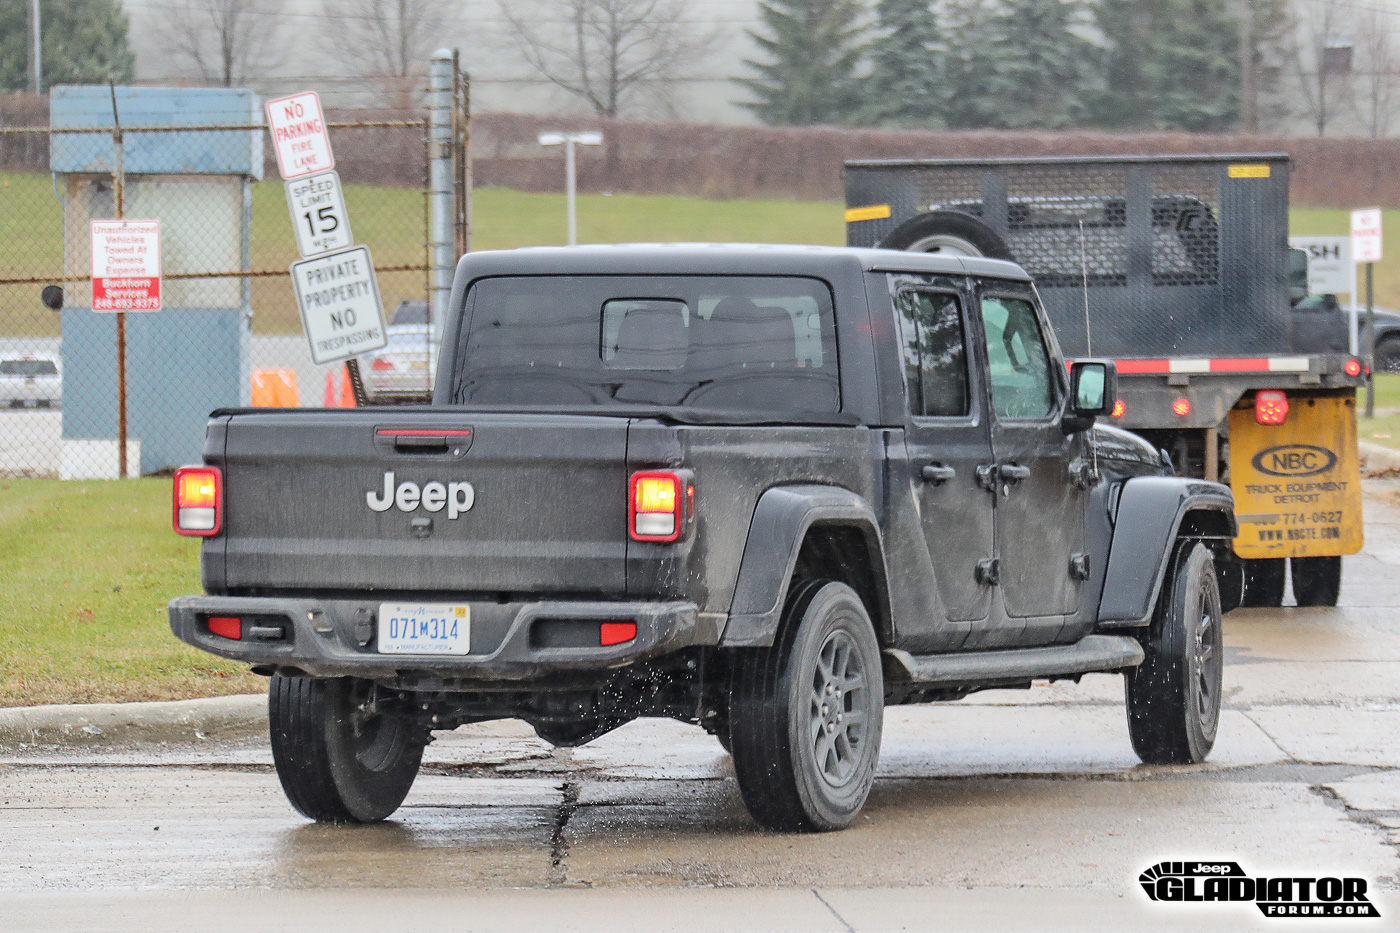 2020-Jeep-Gladiator-JT-Pickup-Truck-Spotted-Undisguised-7.jpg